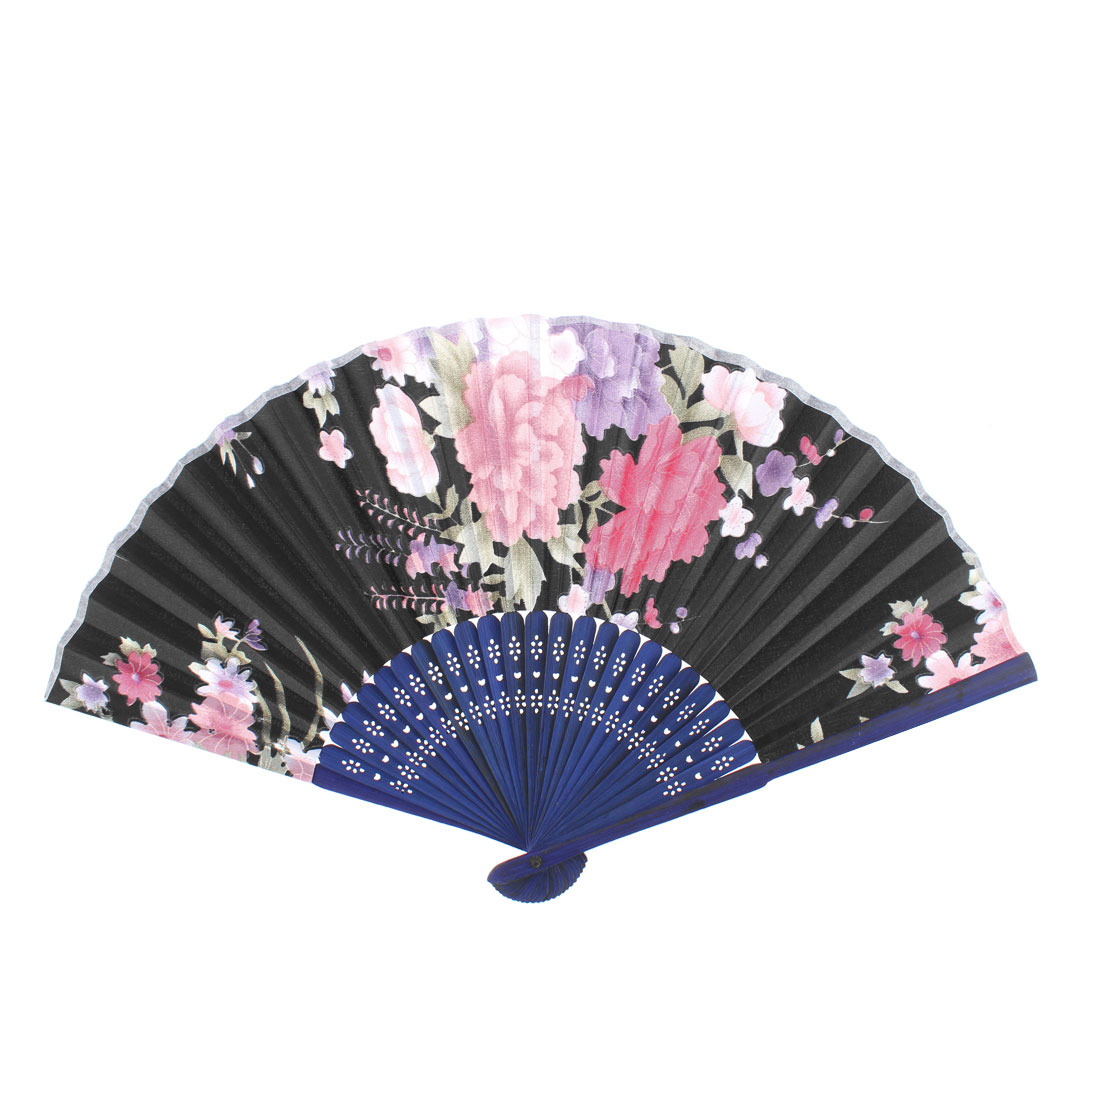 Wooden Frame Chrysanthemum Pattern Handheld Folding Hand Fan 21cm Length Black